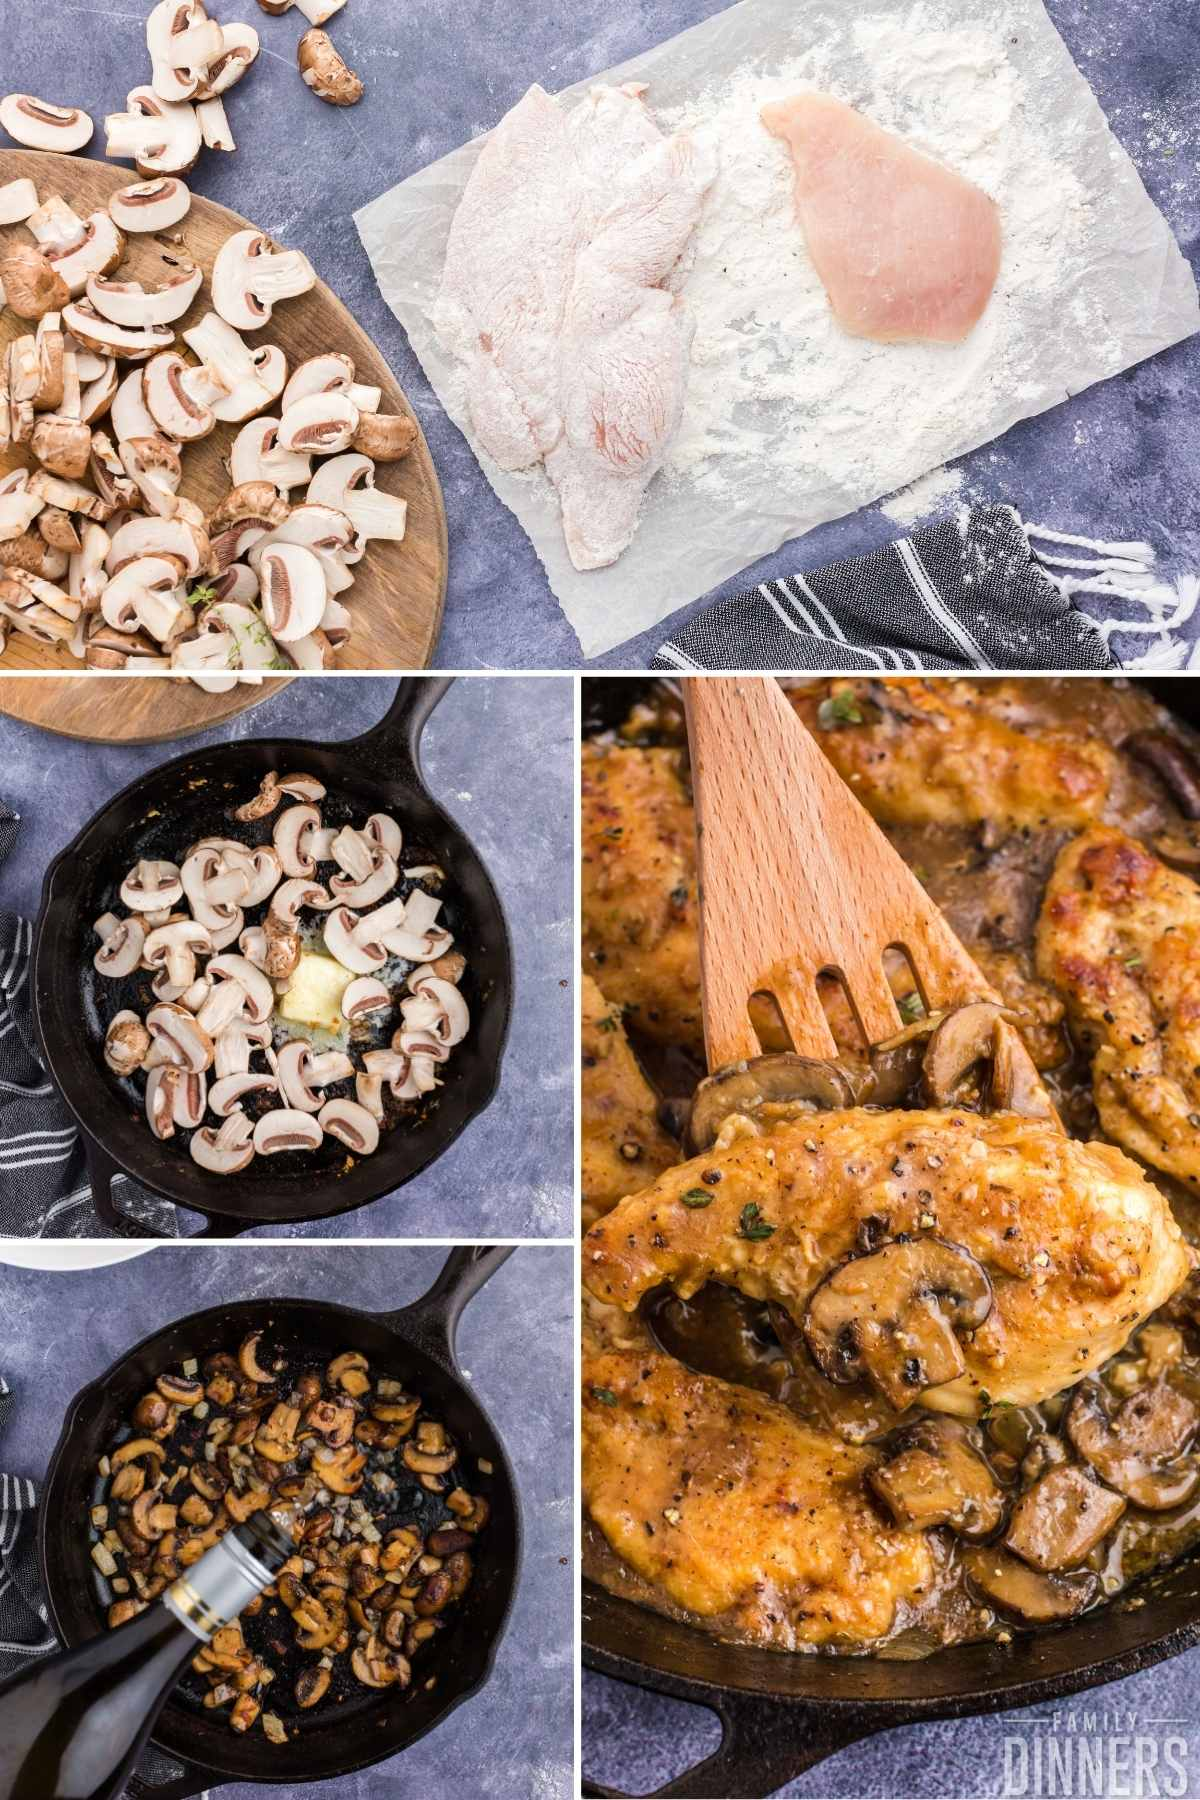 4 image collage. Top image of fresh cut mushrooms on wood cutting board next to parchment paper with flour and chicken breasts. 2nd photo of fresh mushrooms and melting butter in black cast iron pan. 3rd image of sauteed mushrooms in black cast iron pan with white wine bottle pouring into pan. 4th image of cooked chicken surrounded by creamy mushroom sauce